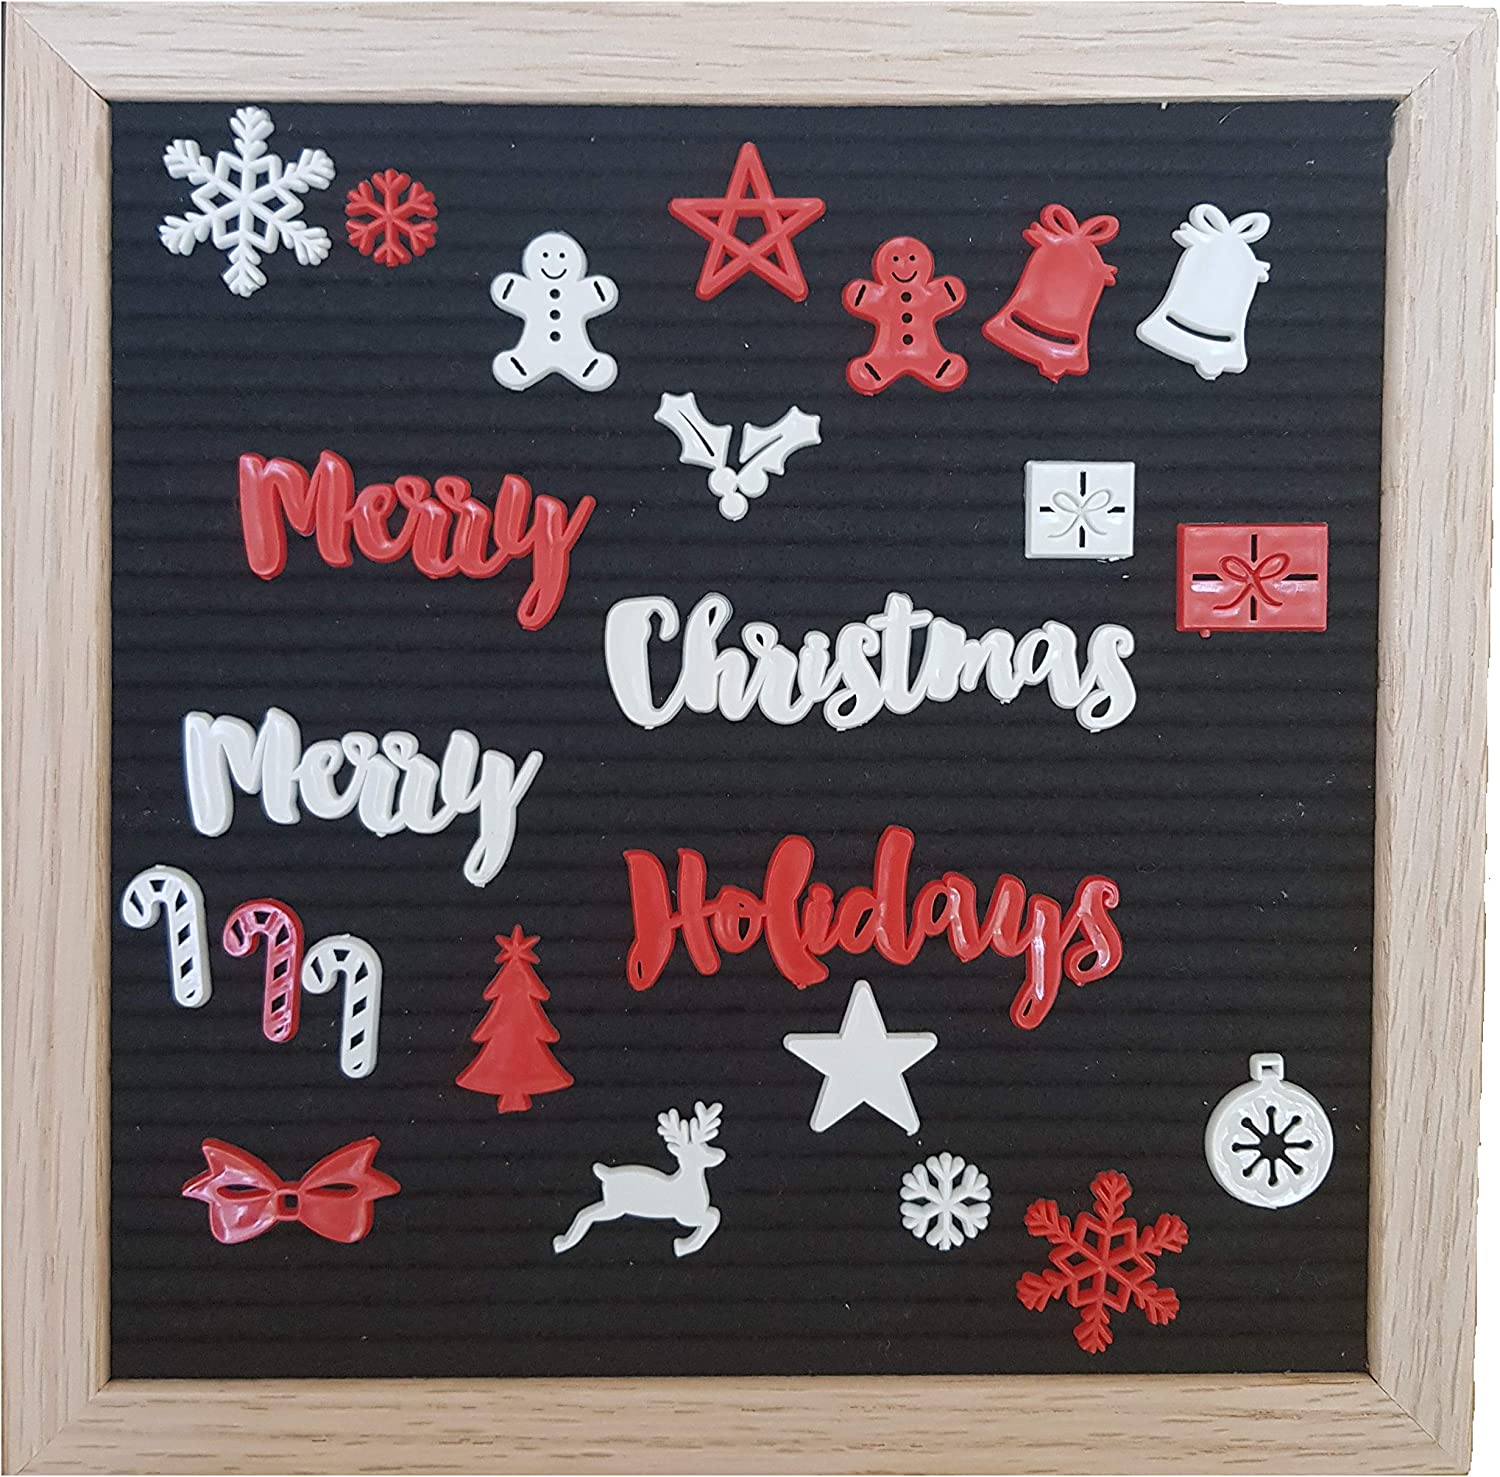 Christmas Letters & Signs for Any Felt Letter Board Words and Symbols for Holiday Season - Board Not Included